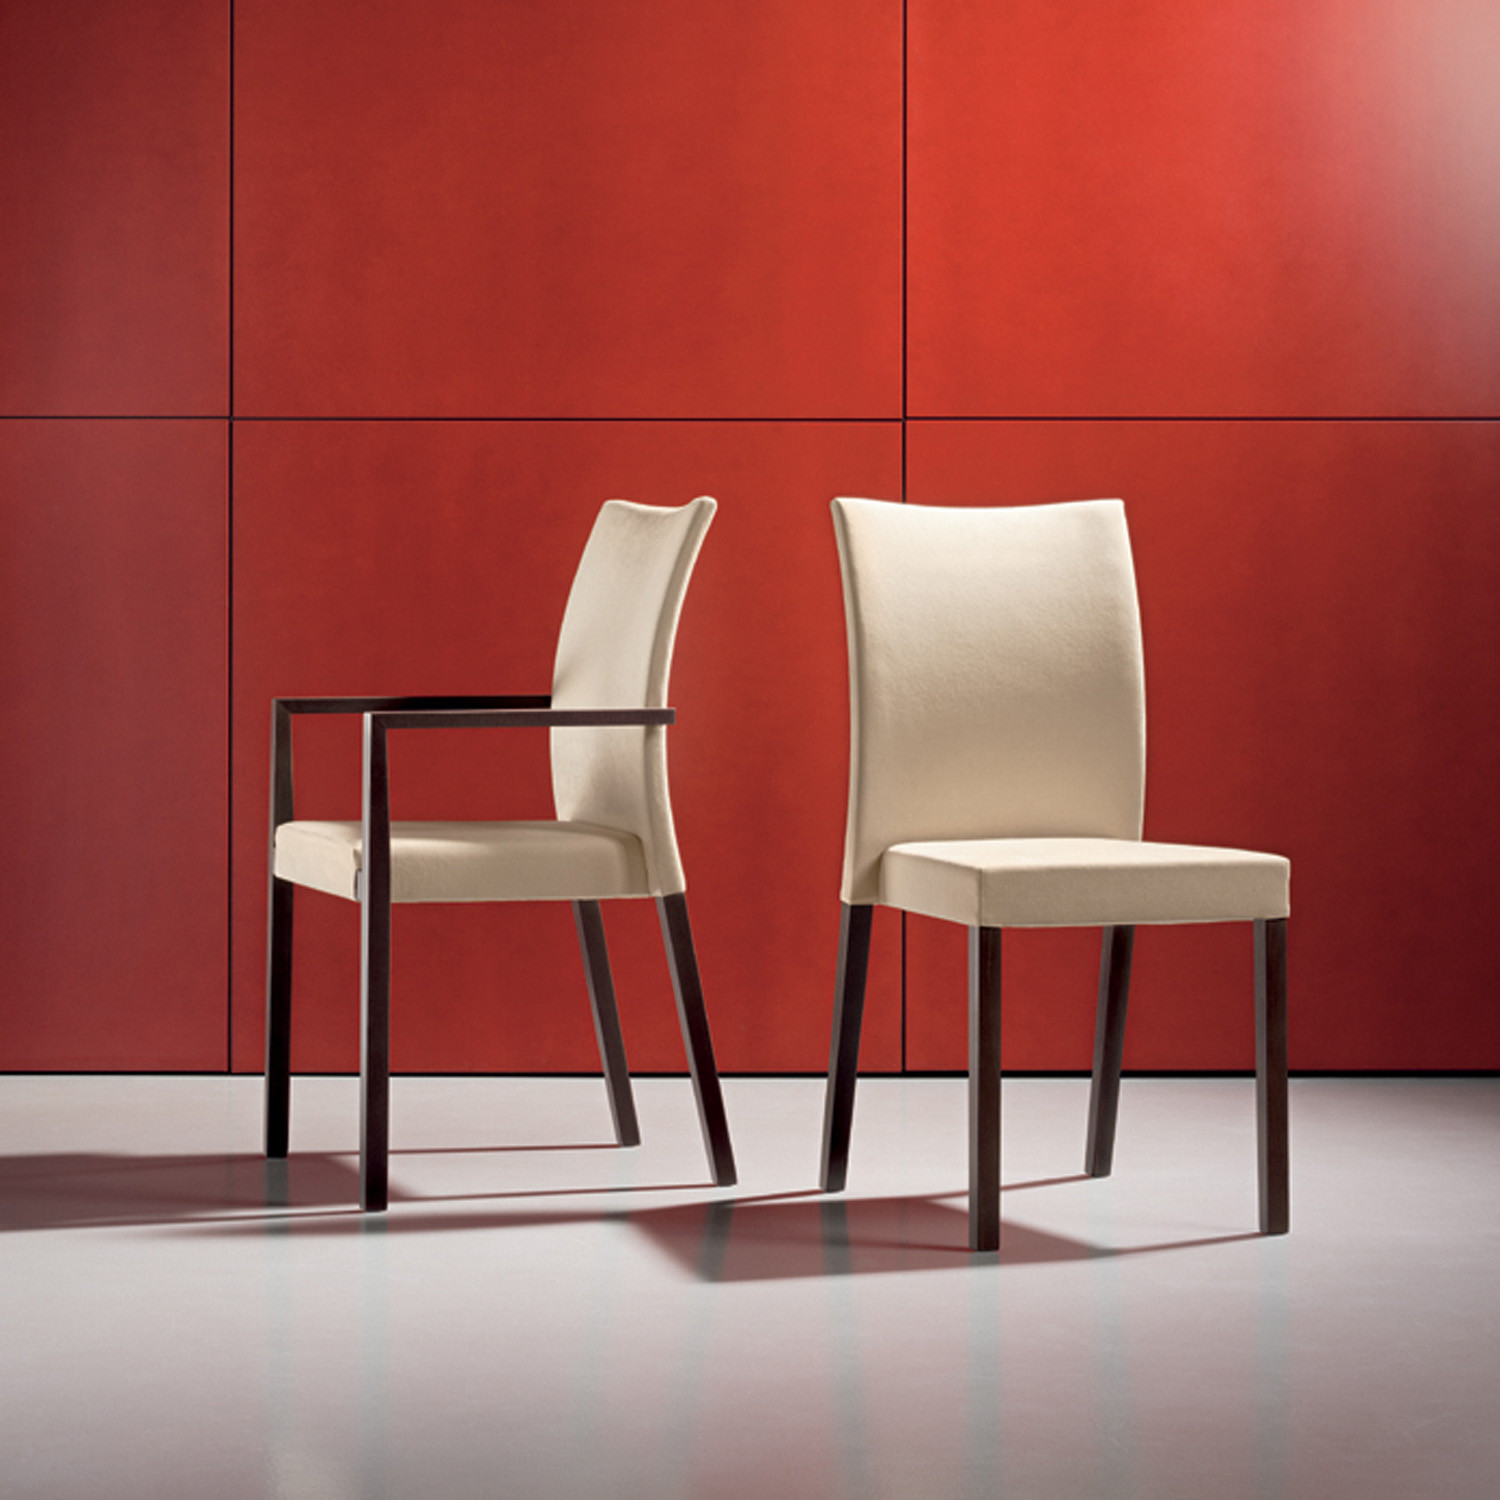 S15 Chairs by Wiesner Hager